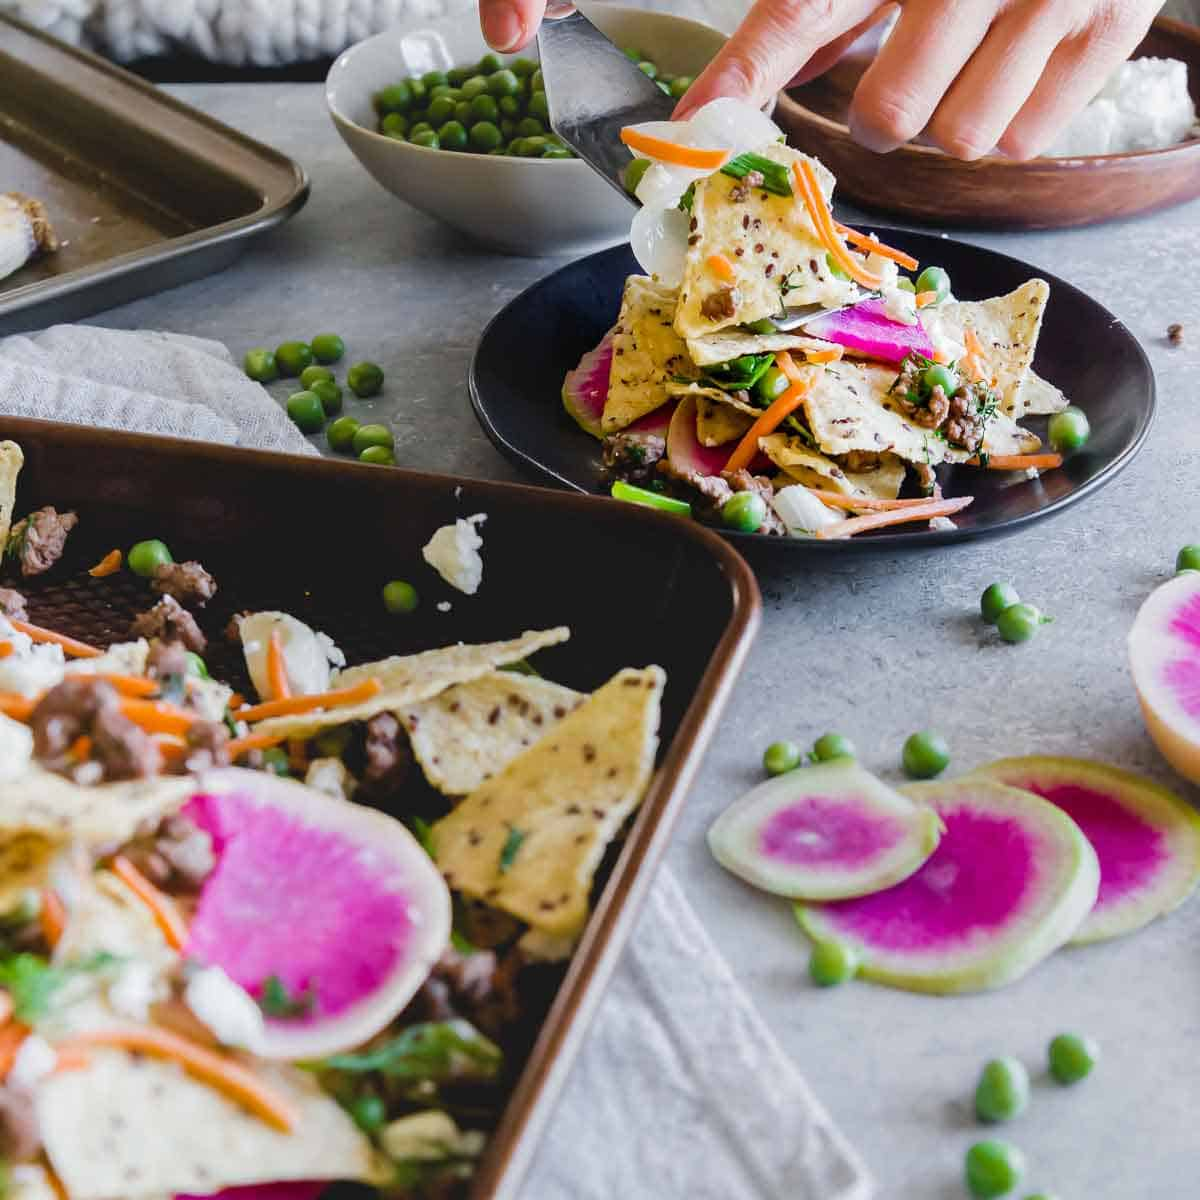 Celebrate spring with these lamb nachos and early spring vegetables on crispy corn tortillas with feta cheese.